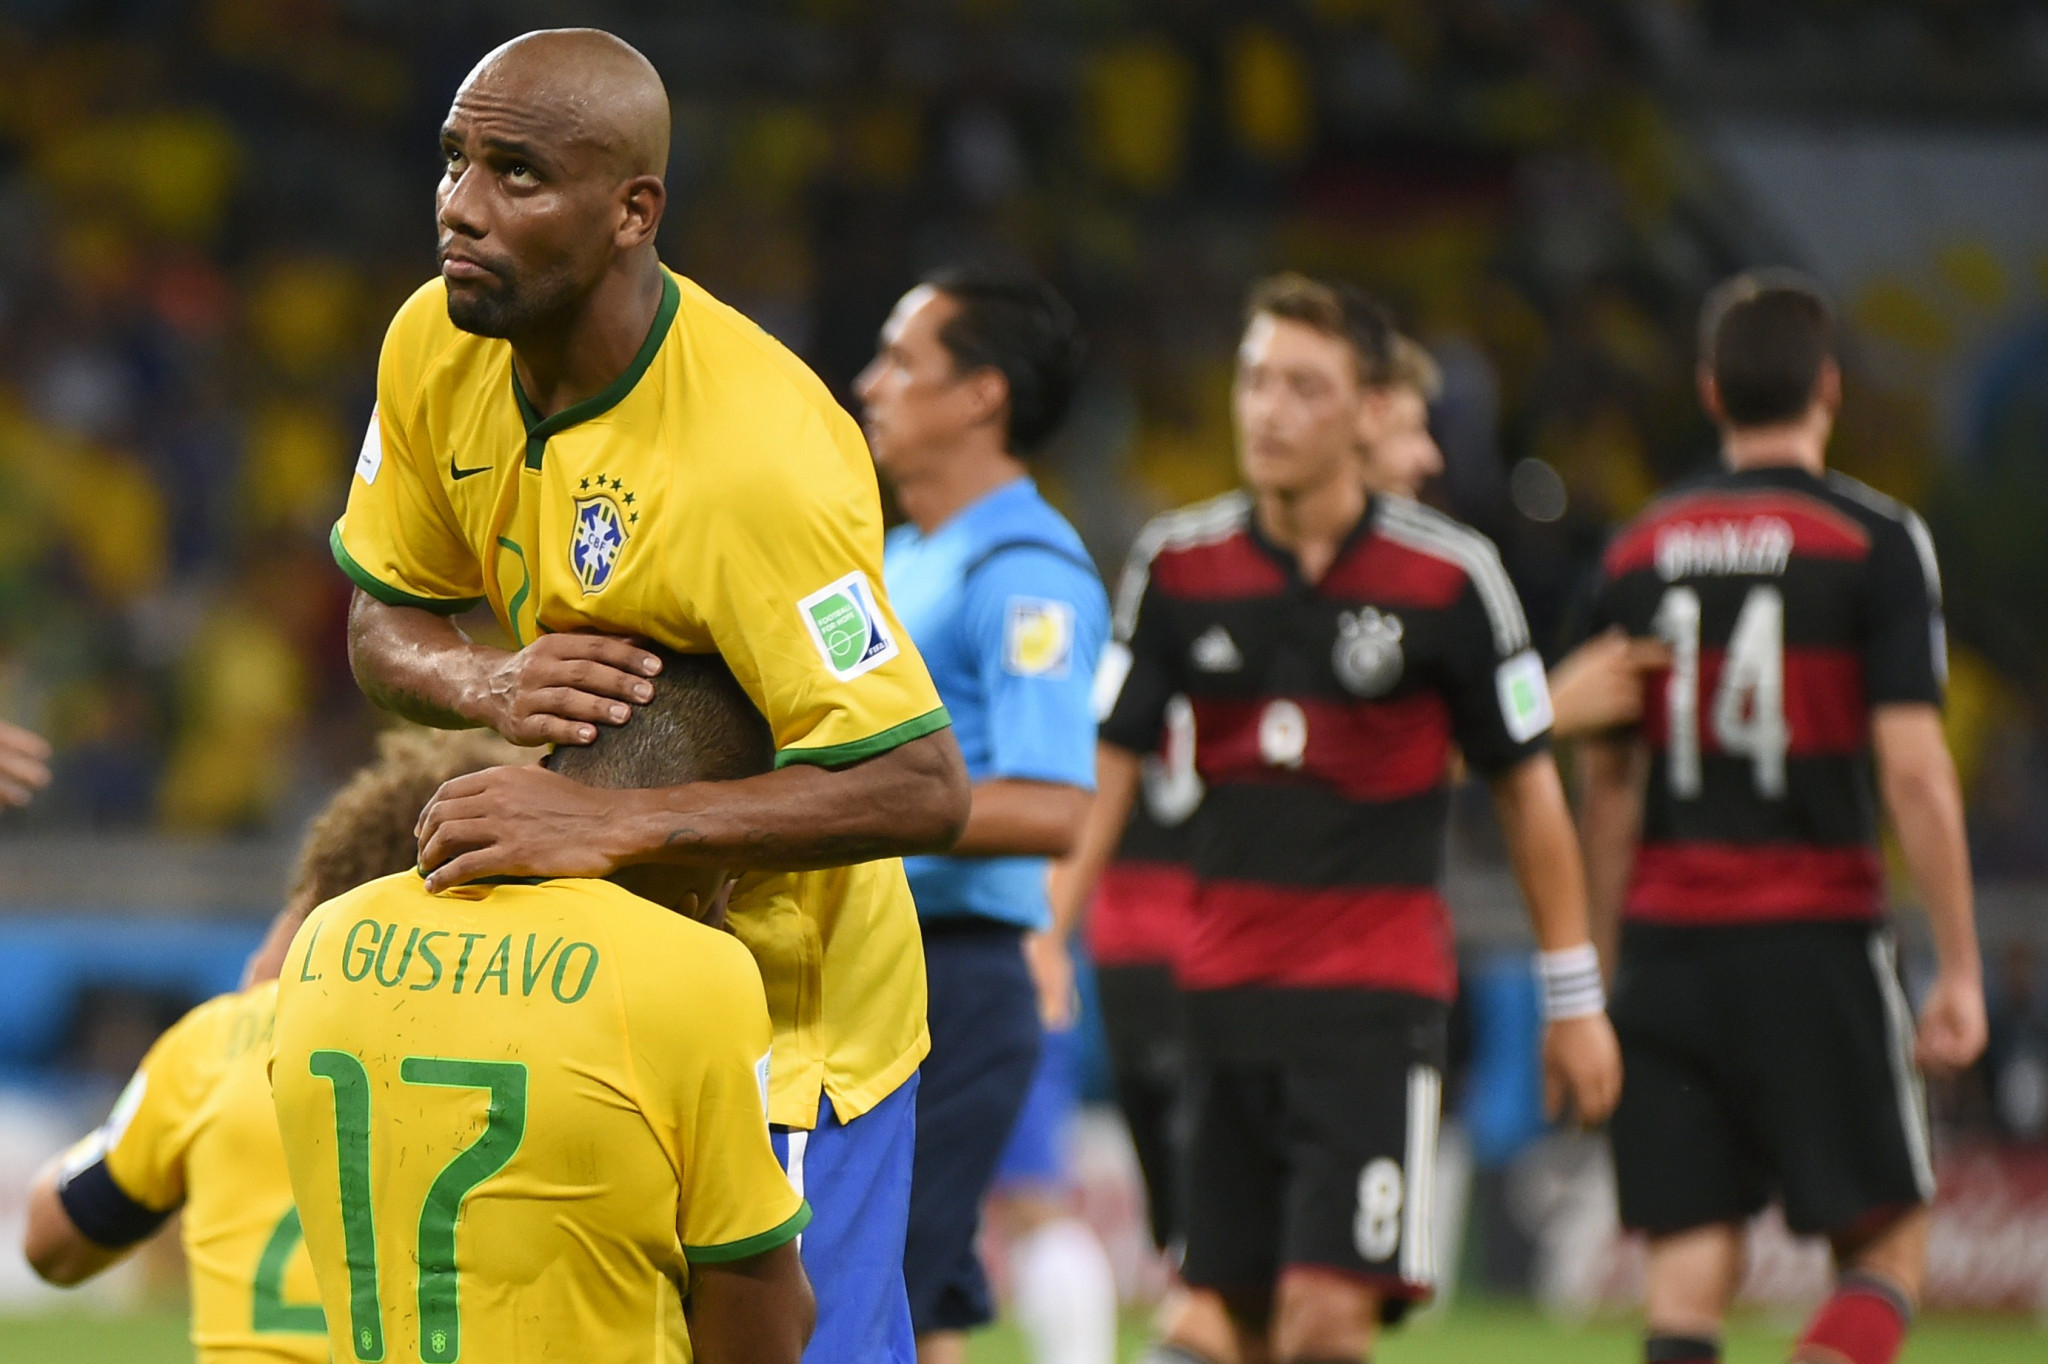 Brazil will do everything to avoid a World Cup defeat similar to the 7-1 drubbing by Germany in 2014 ©Getty Images